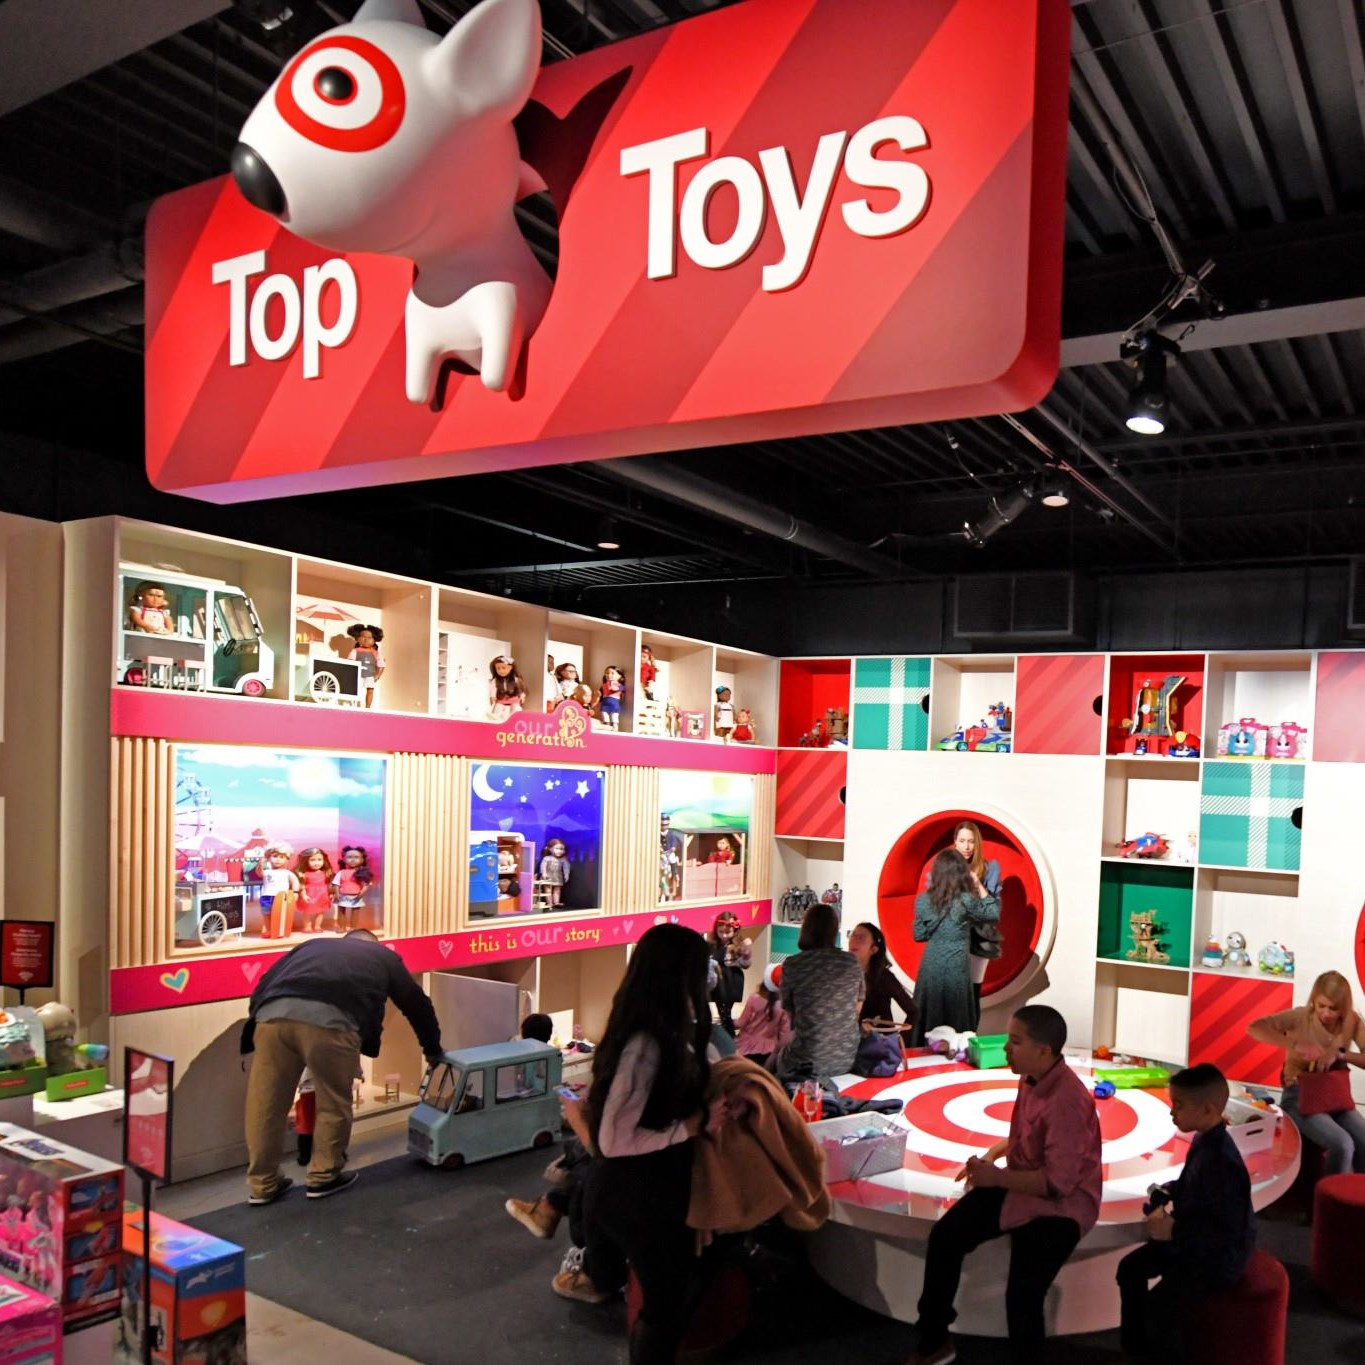 Guests enjoy a variety of toys in the Top Toys display